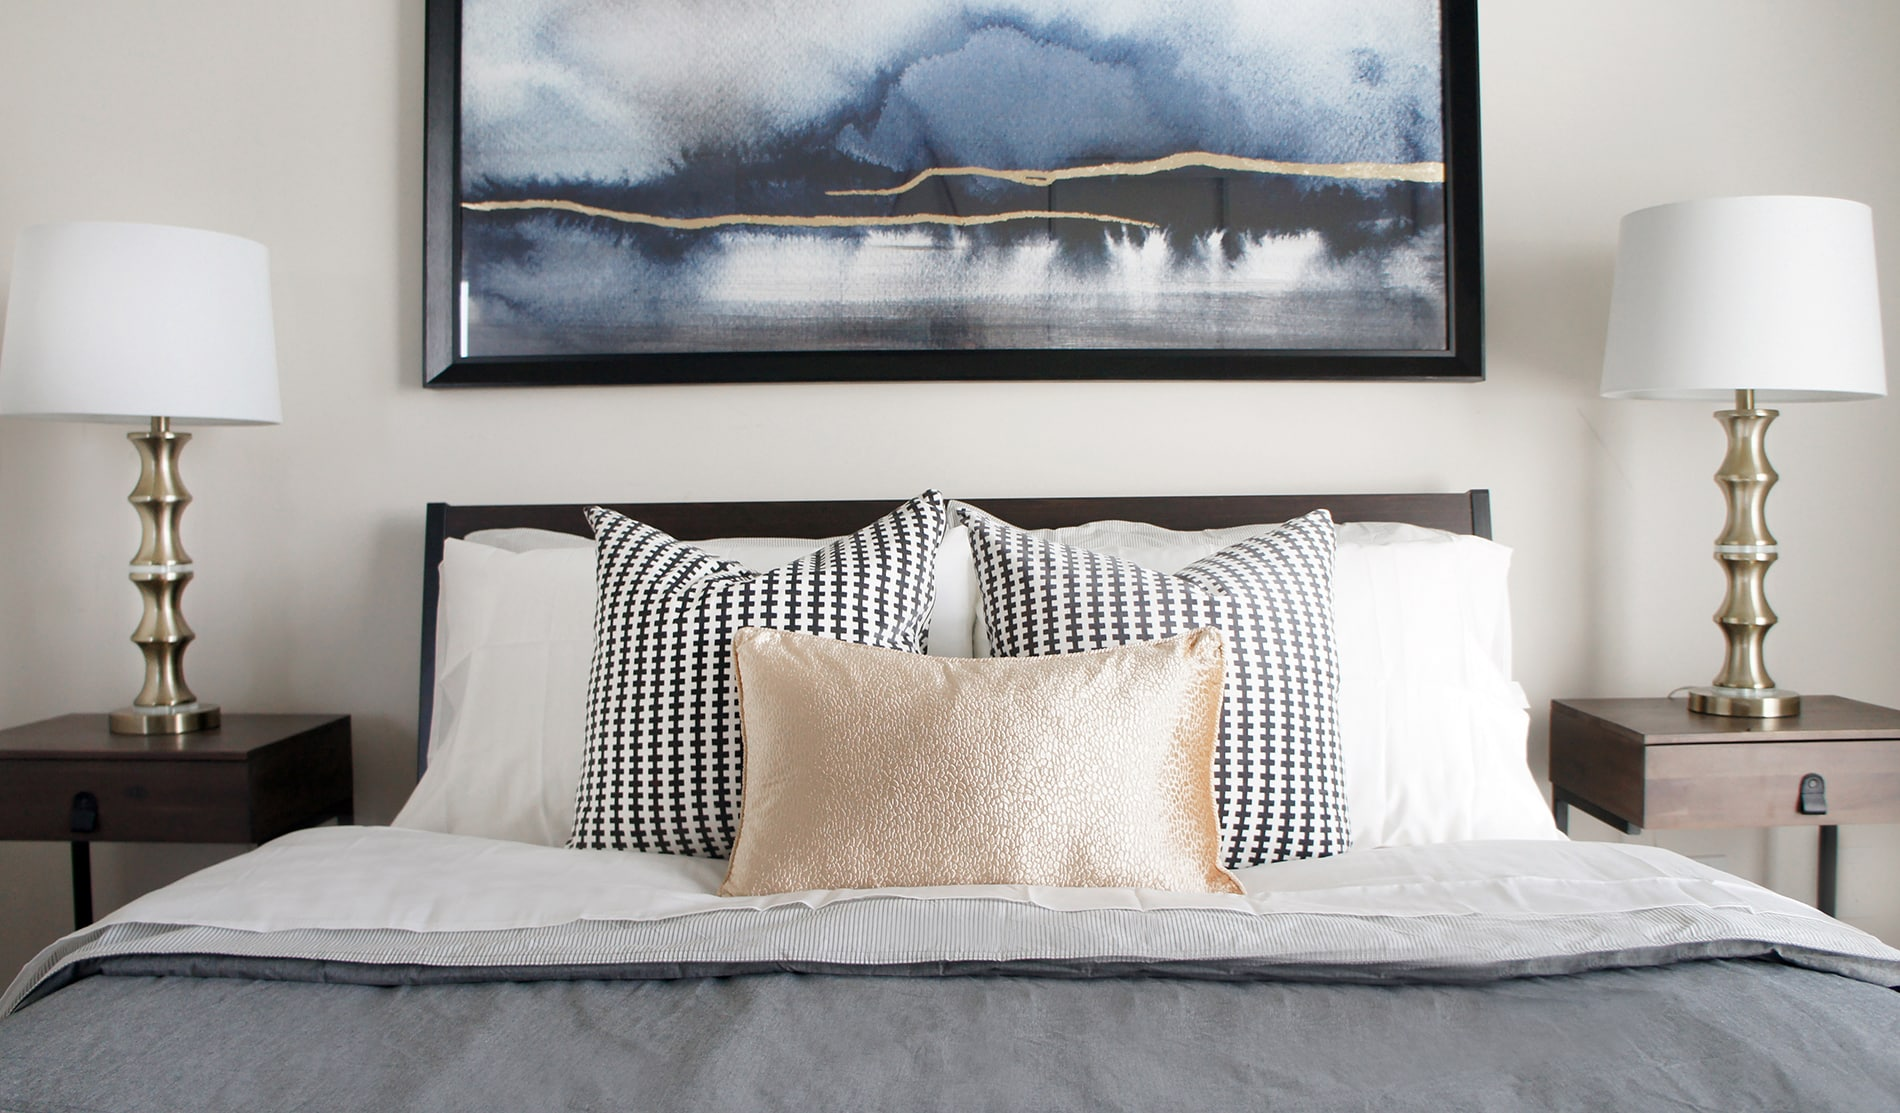 A piece of wall art featuring blue and gold added visual interest and height over the headboard in one of the condo bedroom designs